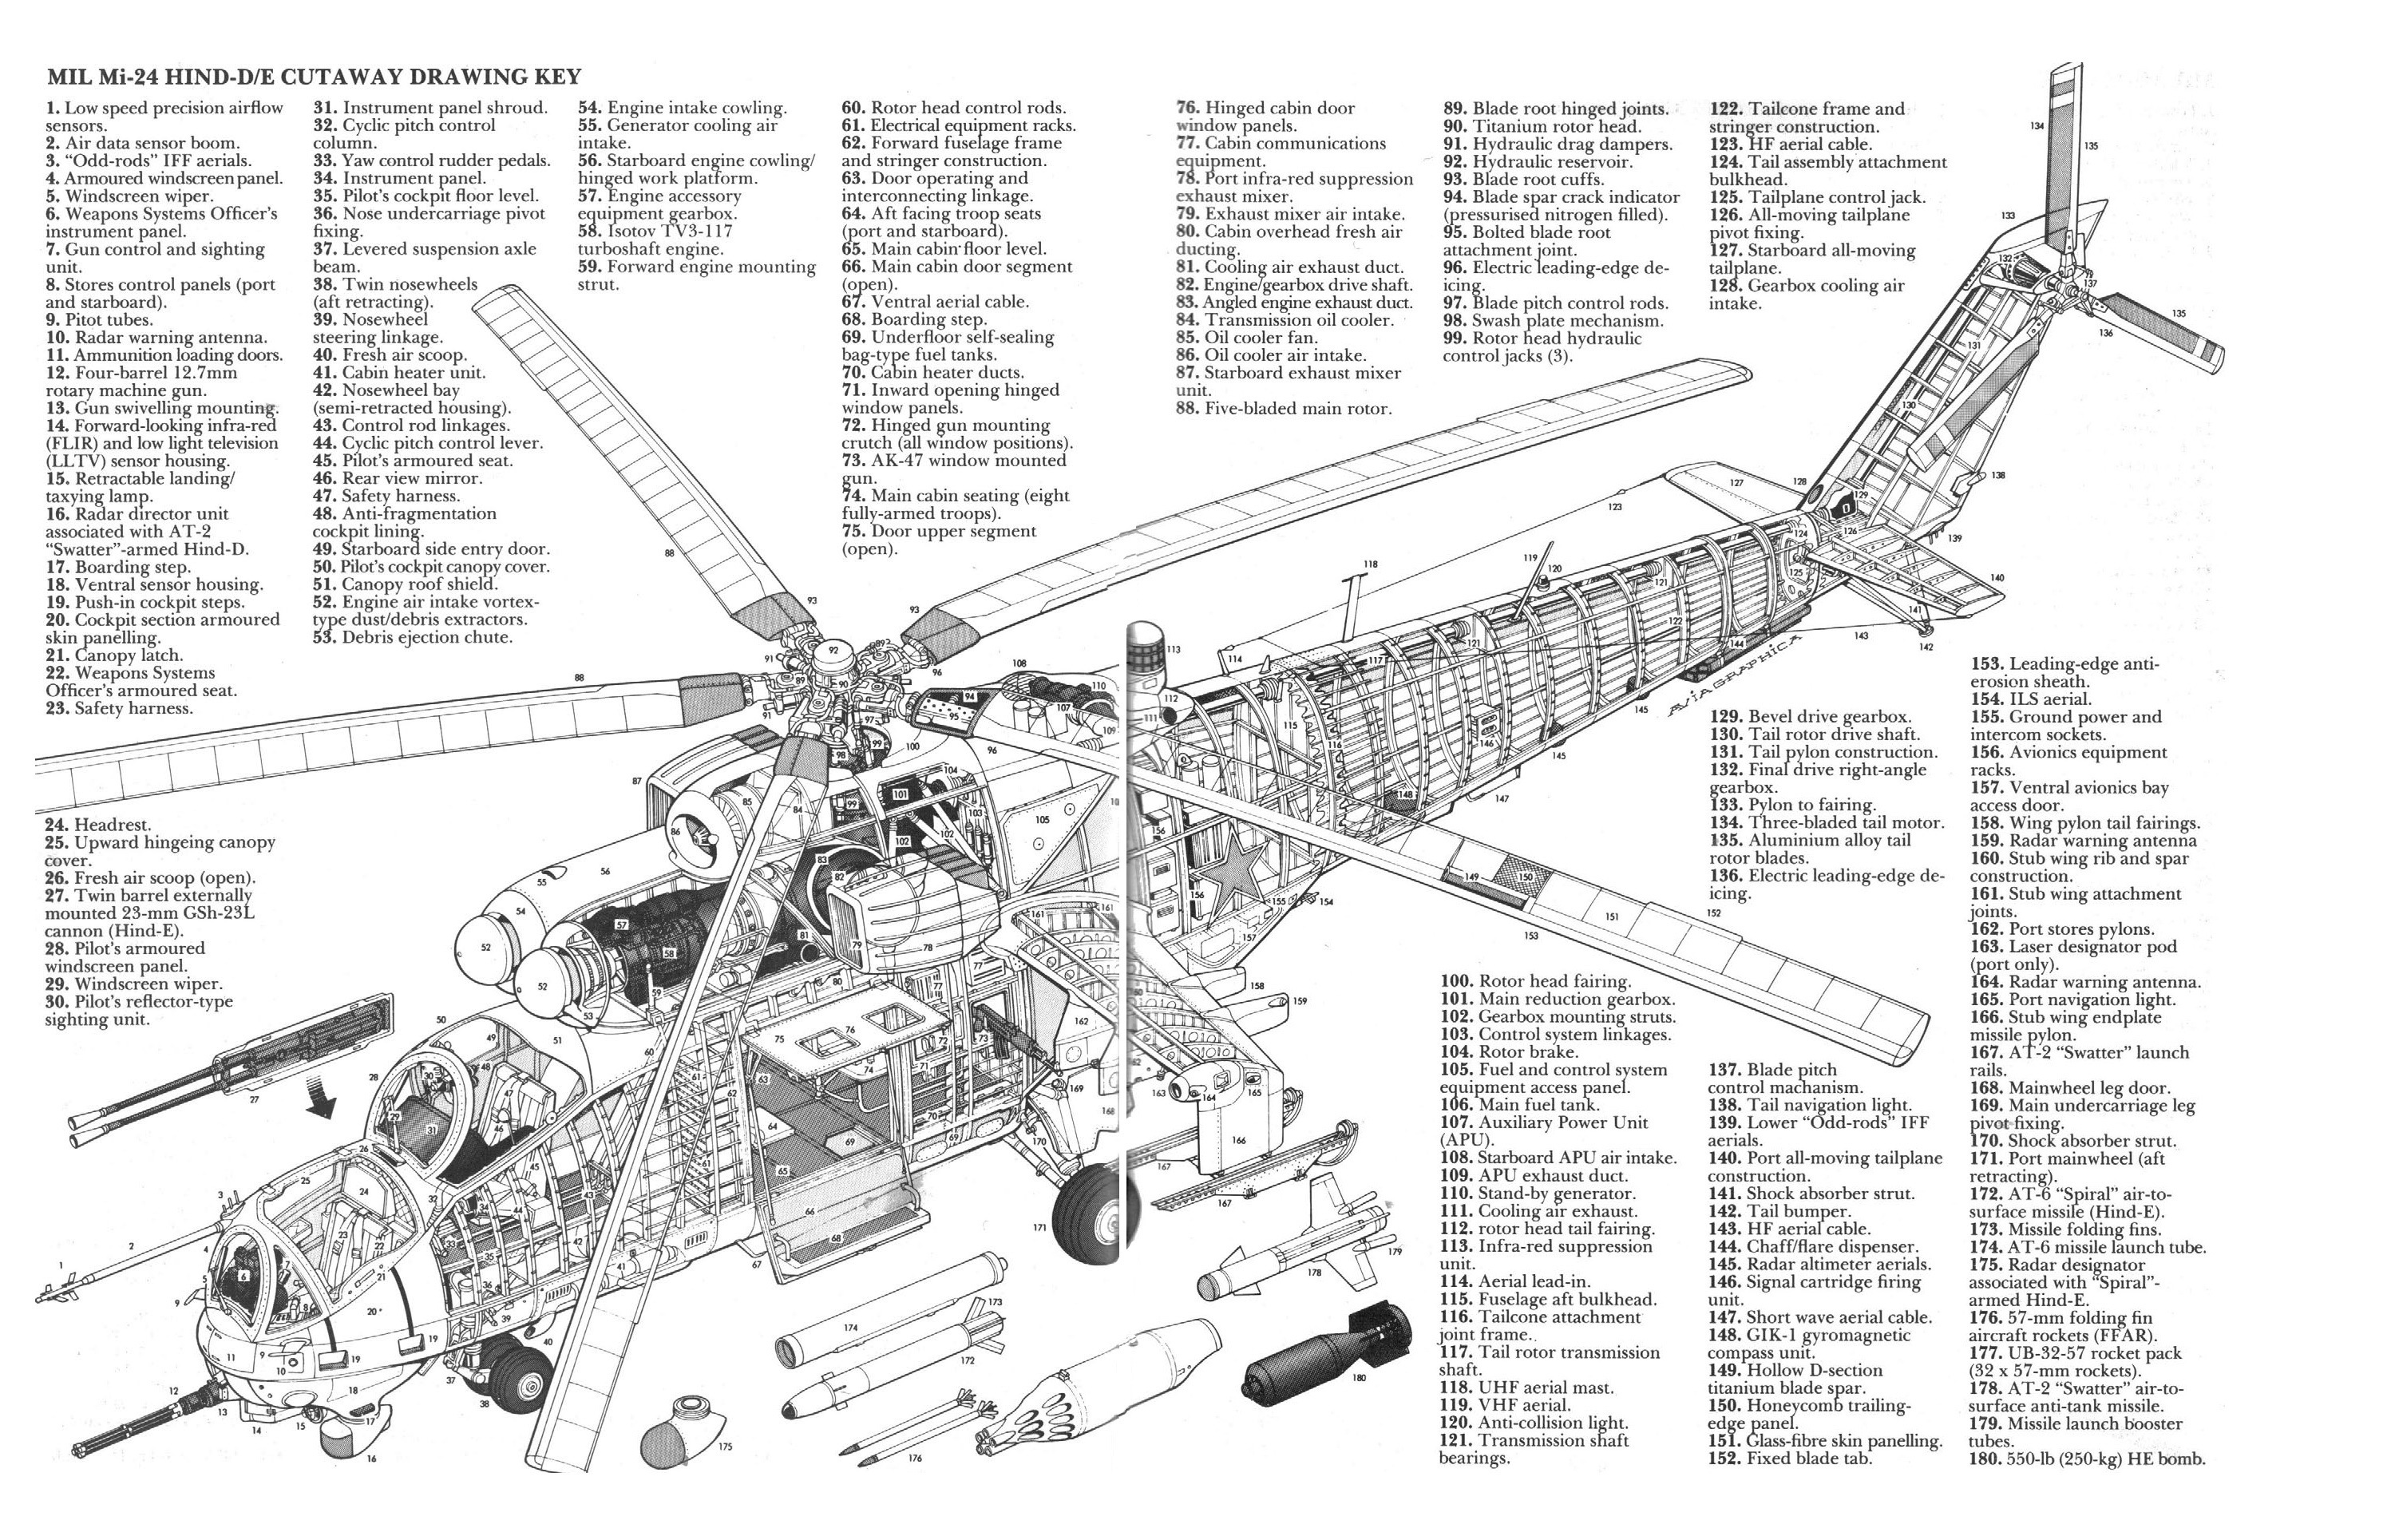 helicopters mi   aviation helicopter schematics schematic diagram    helicopters mi   aviation helicopter schematics schematic diagram texts military     x      wallpaperup